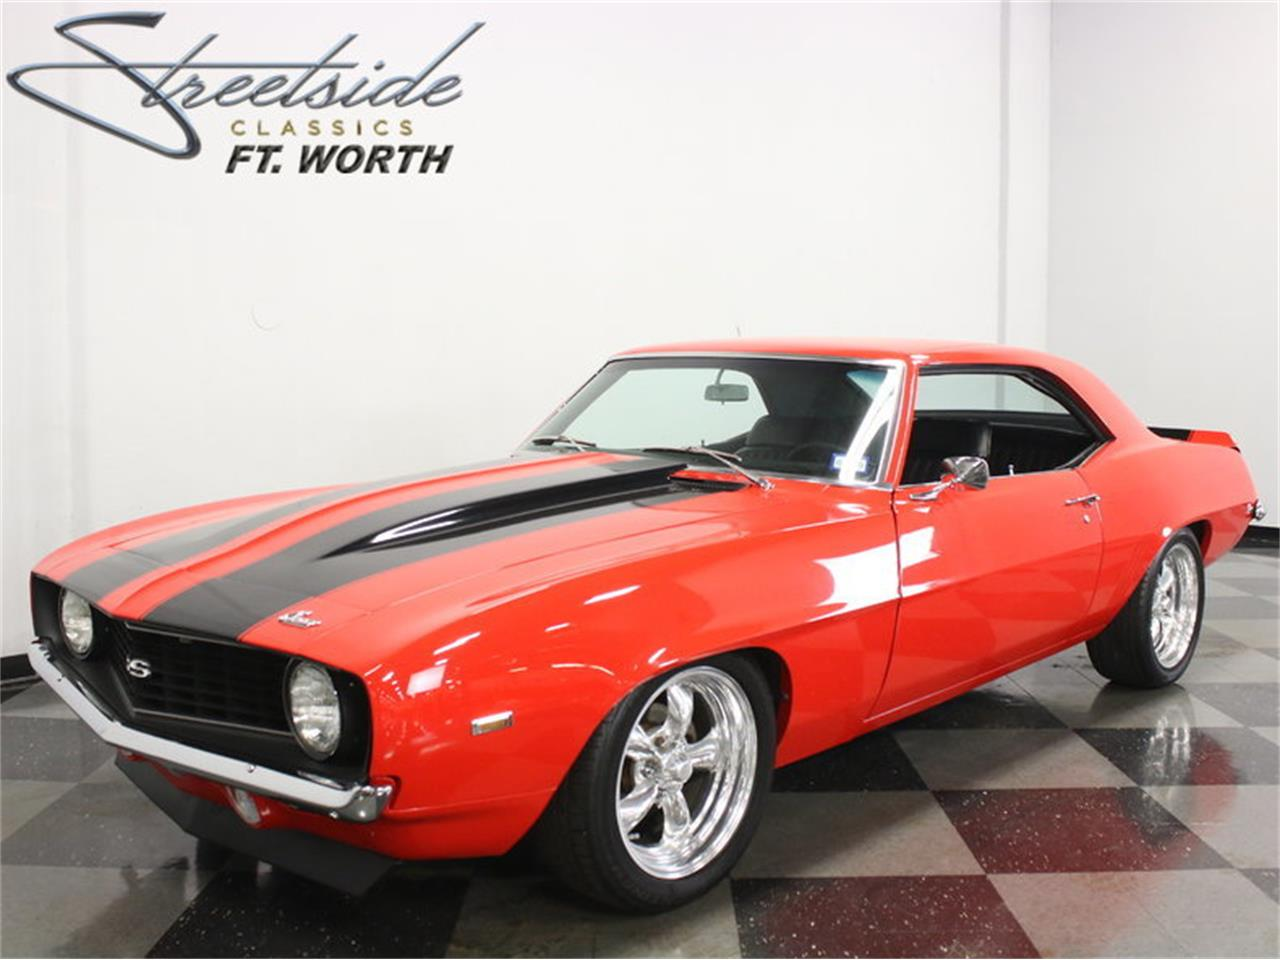 For Sale: 1969 Chevrolet Camaro SS Pro Touring in Ft Worth, Texas